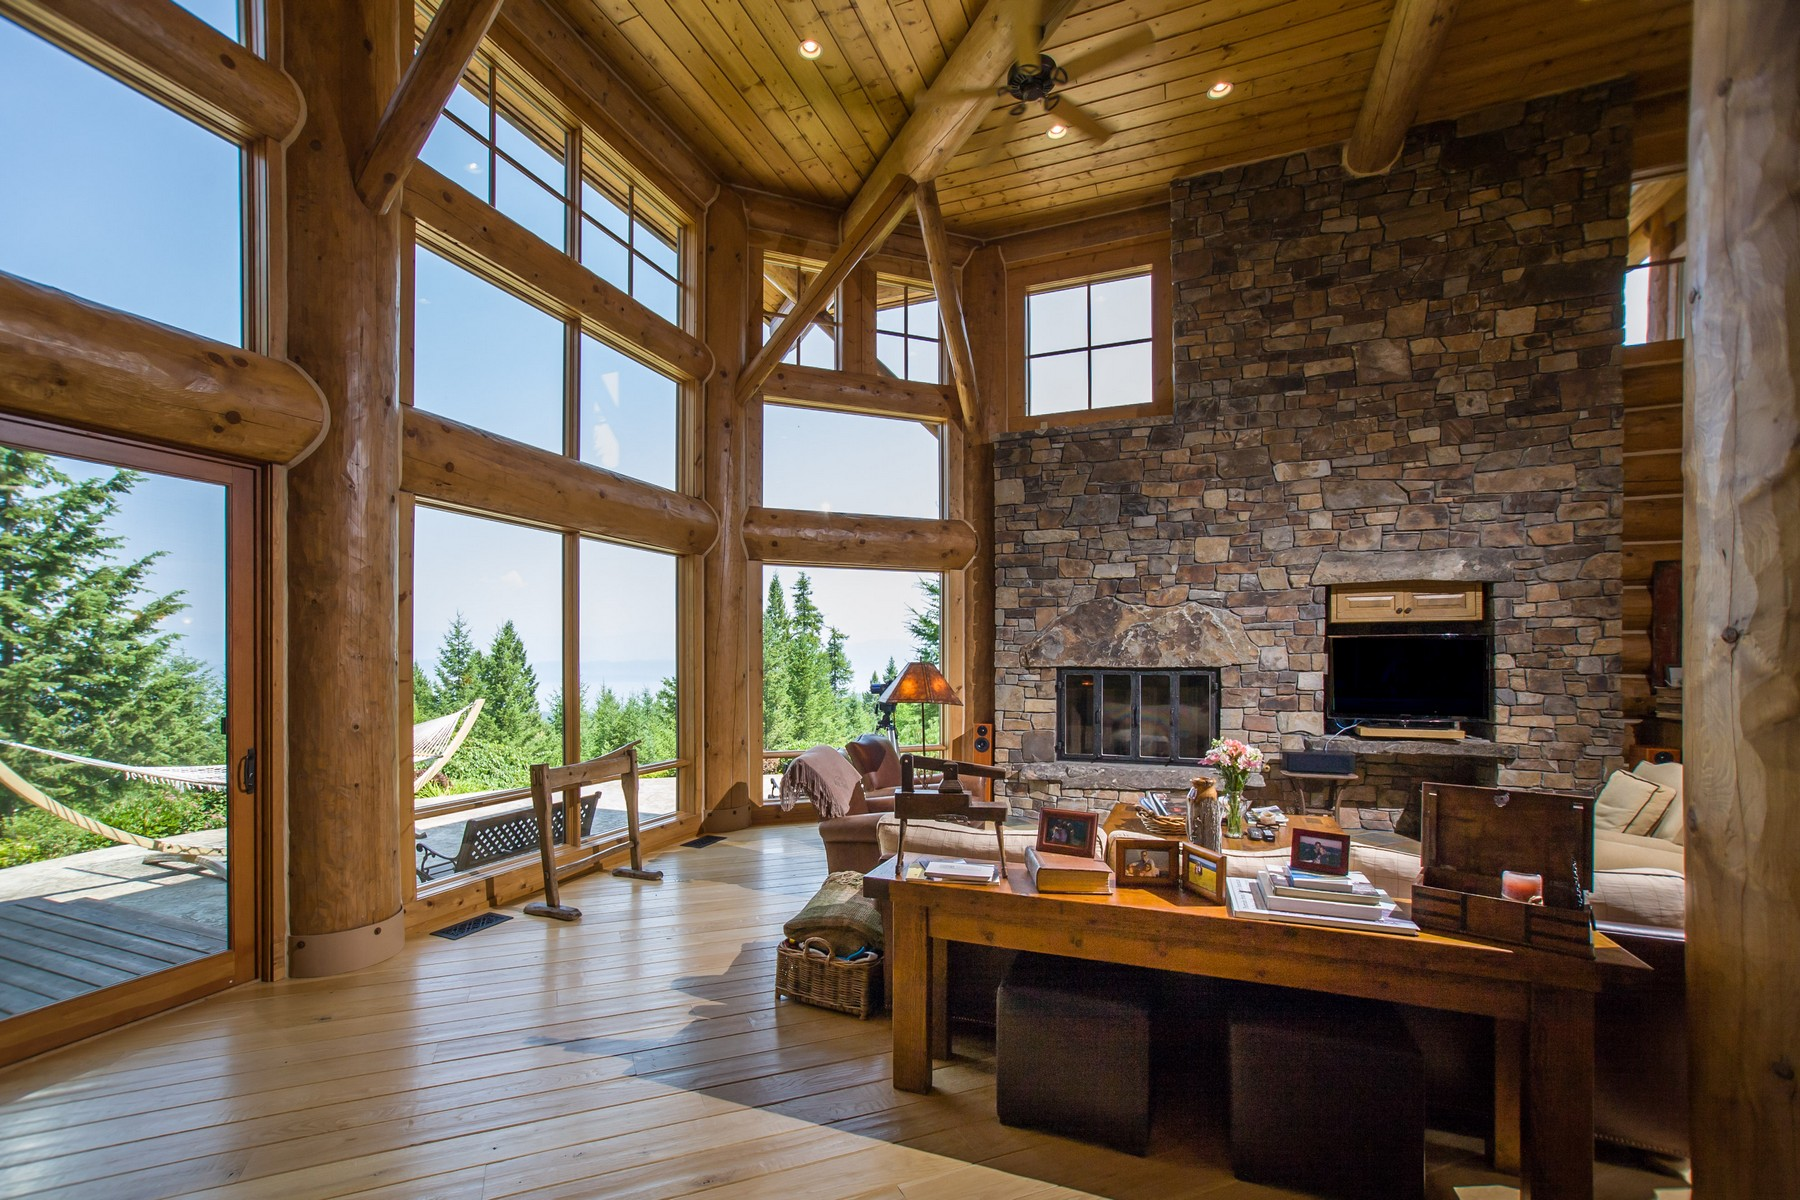 Single Family Homes for Sale at 675 Blacktail Heights Road Lakeside, Montana 59922 United States